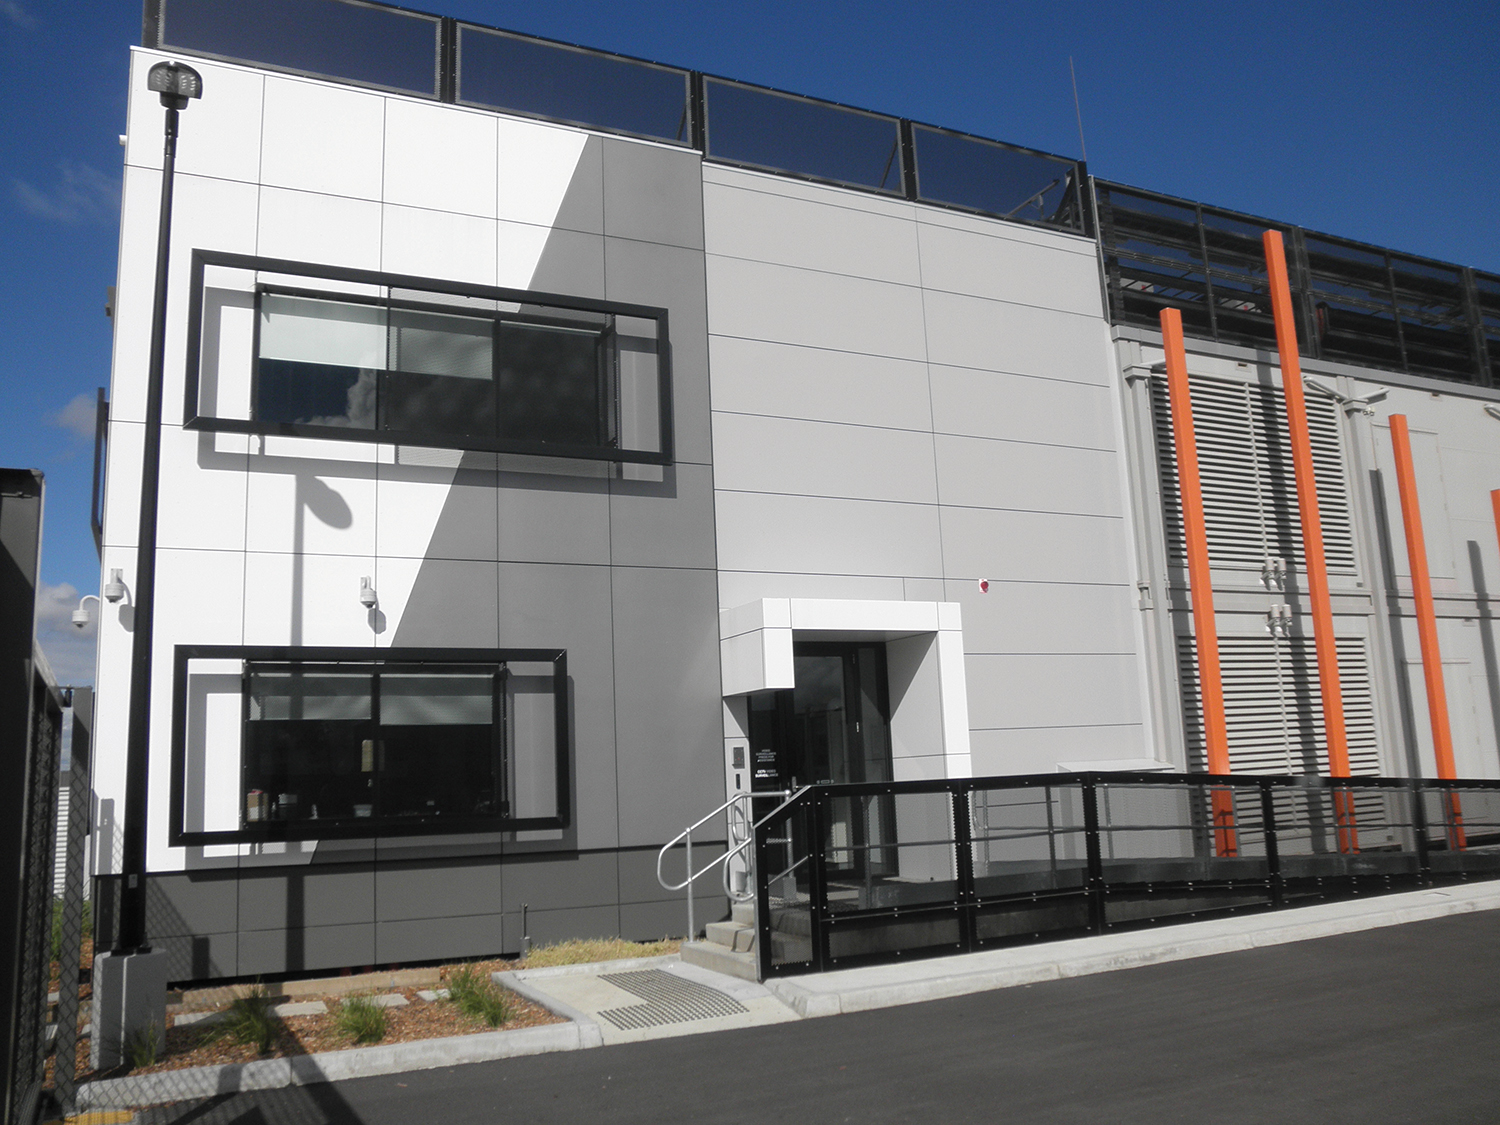 The exterior of the Metronode facility.